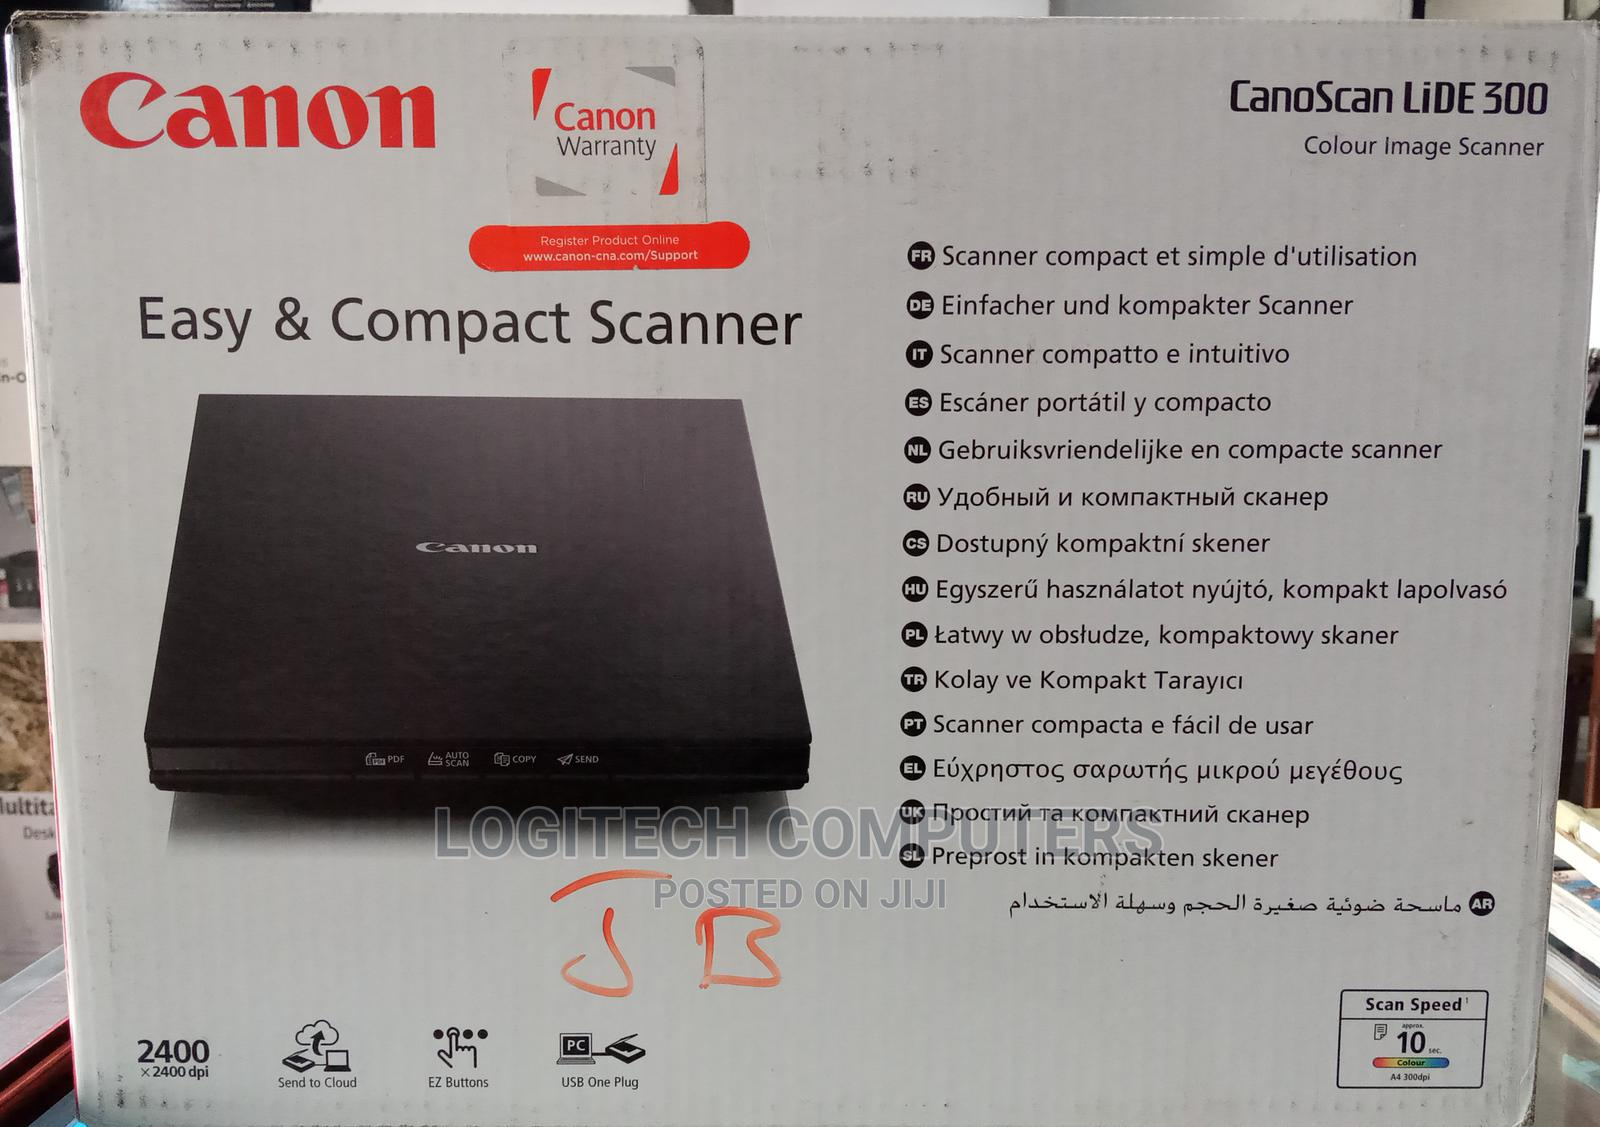 High Resolution Canon Colour Scanner